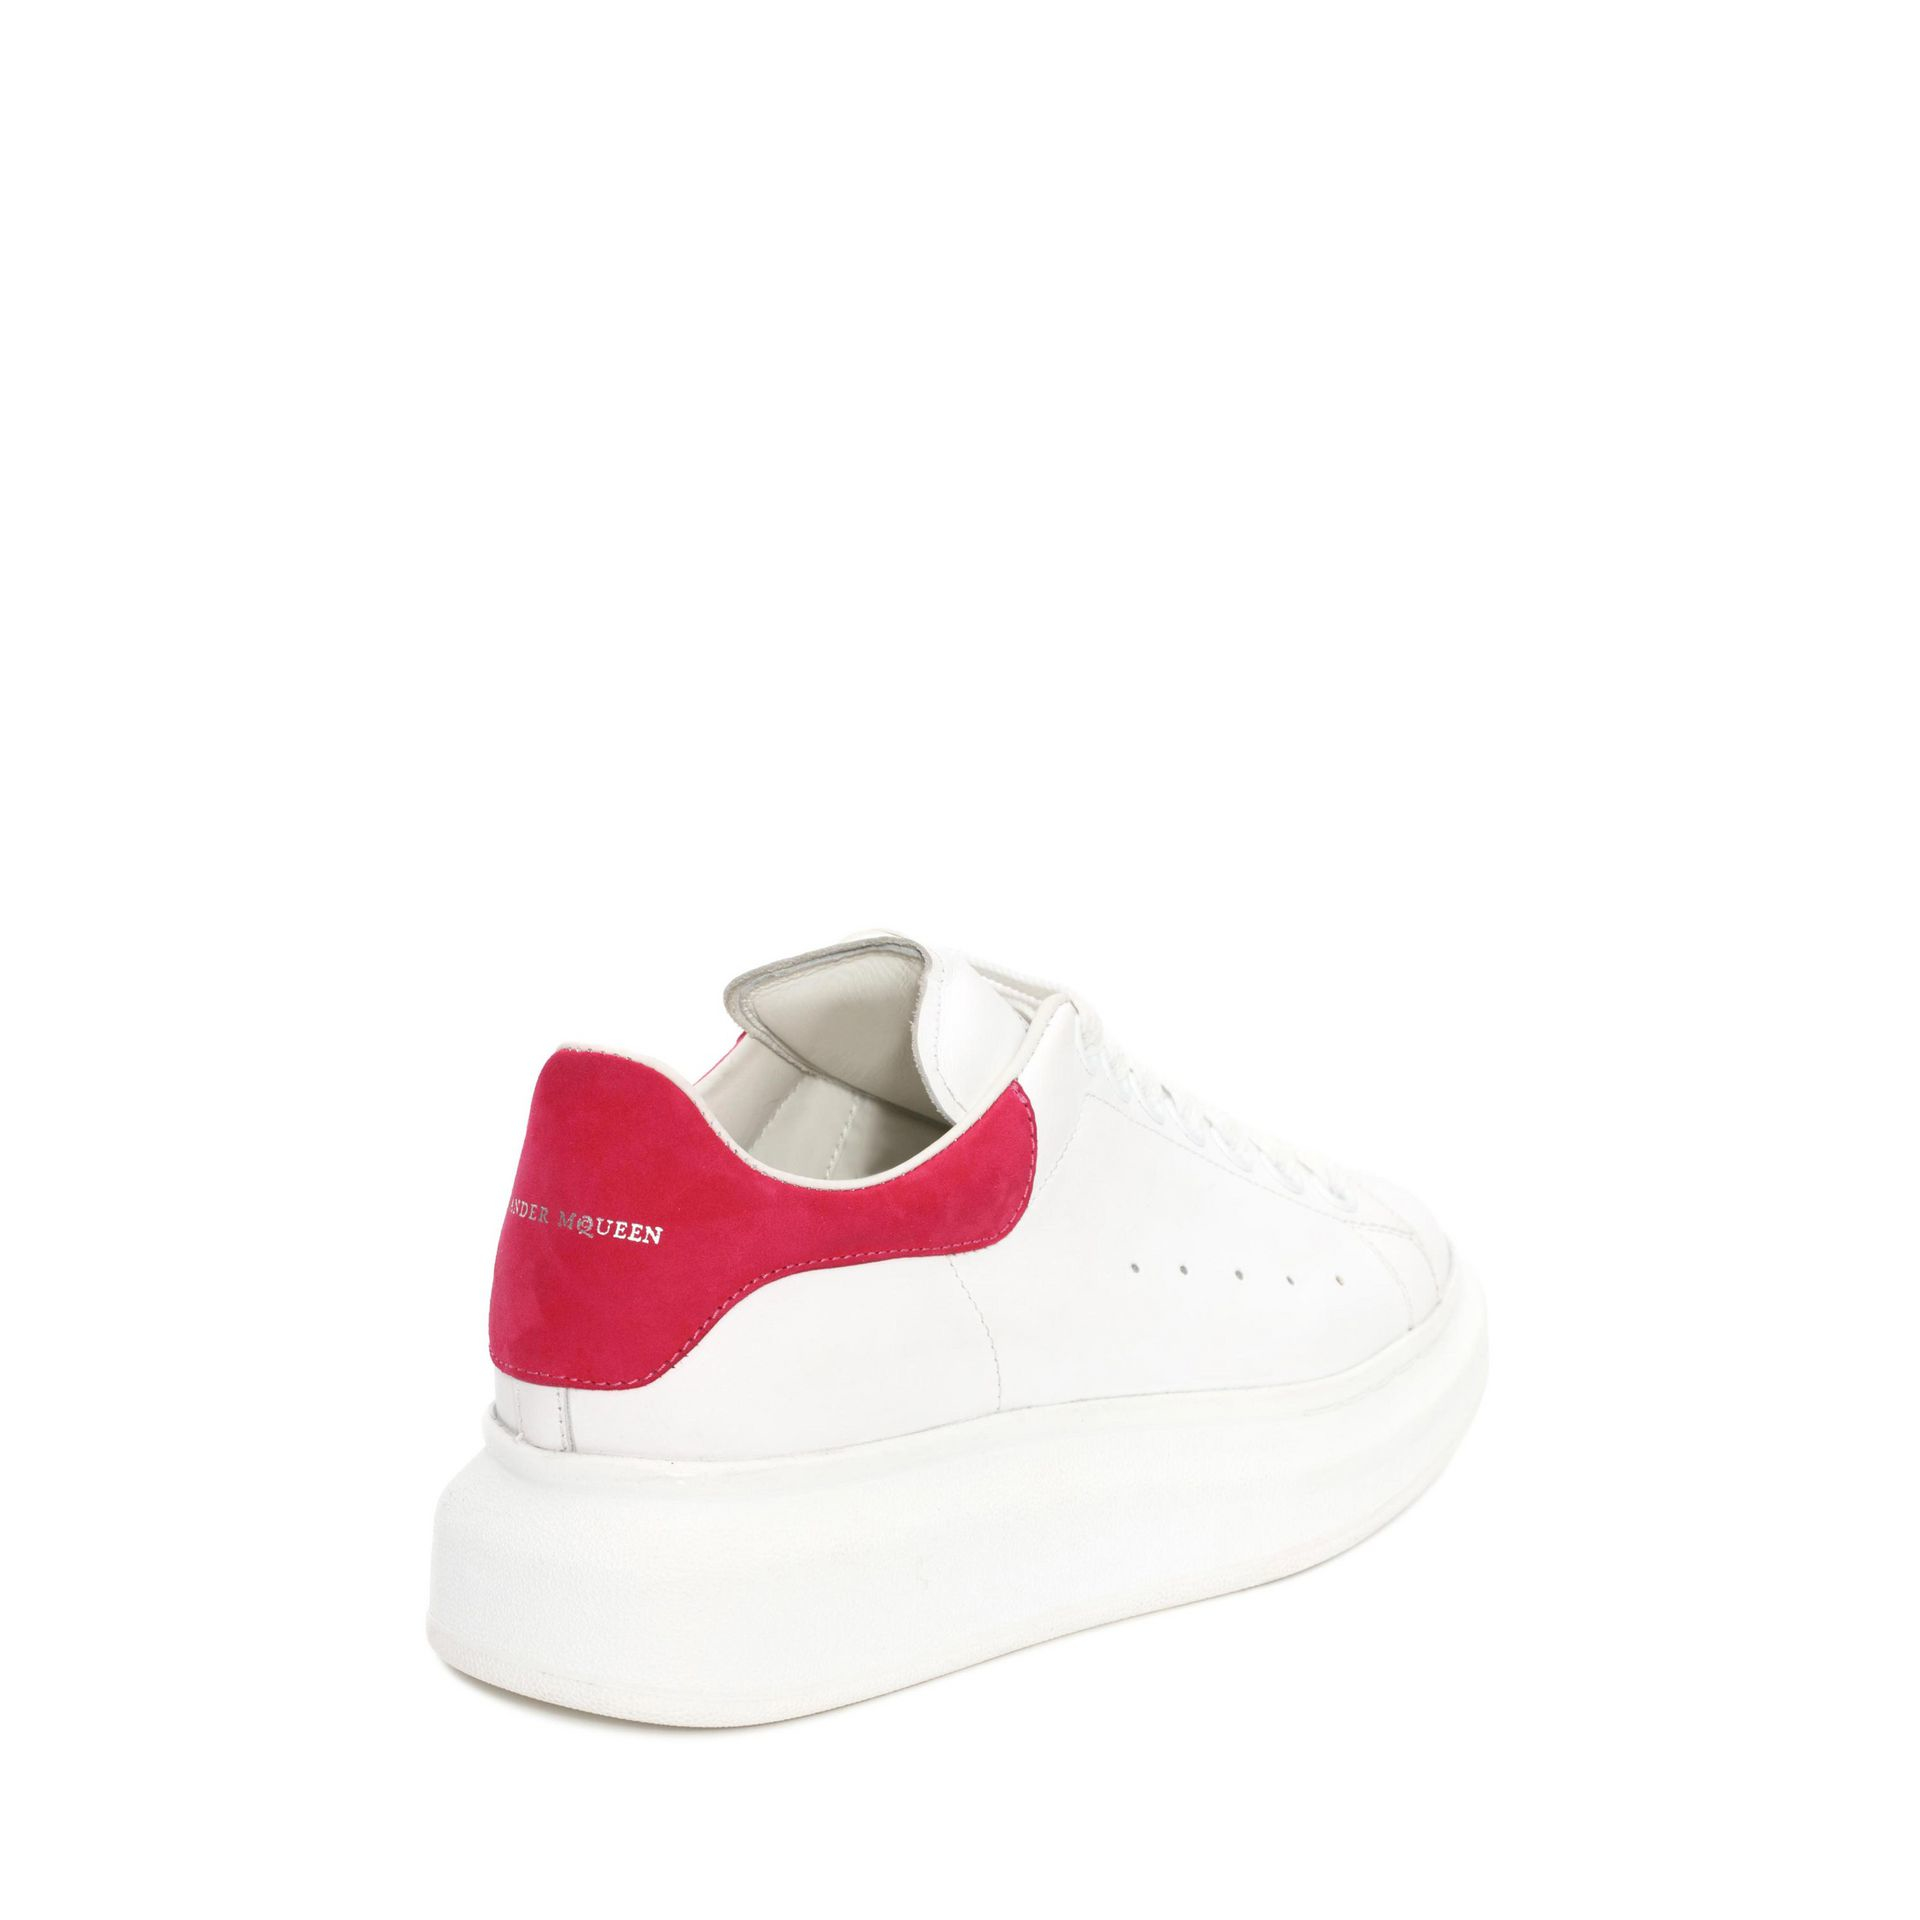 Oversized sneakers - Pink & Purple Alexander McQueen 8Hh1Ds